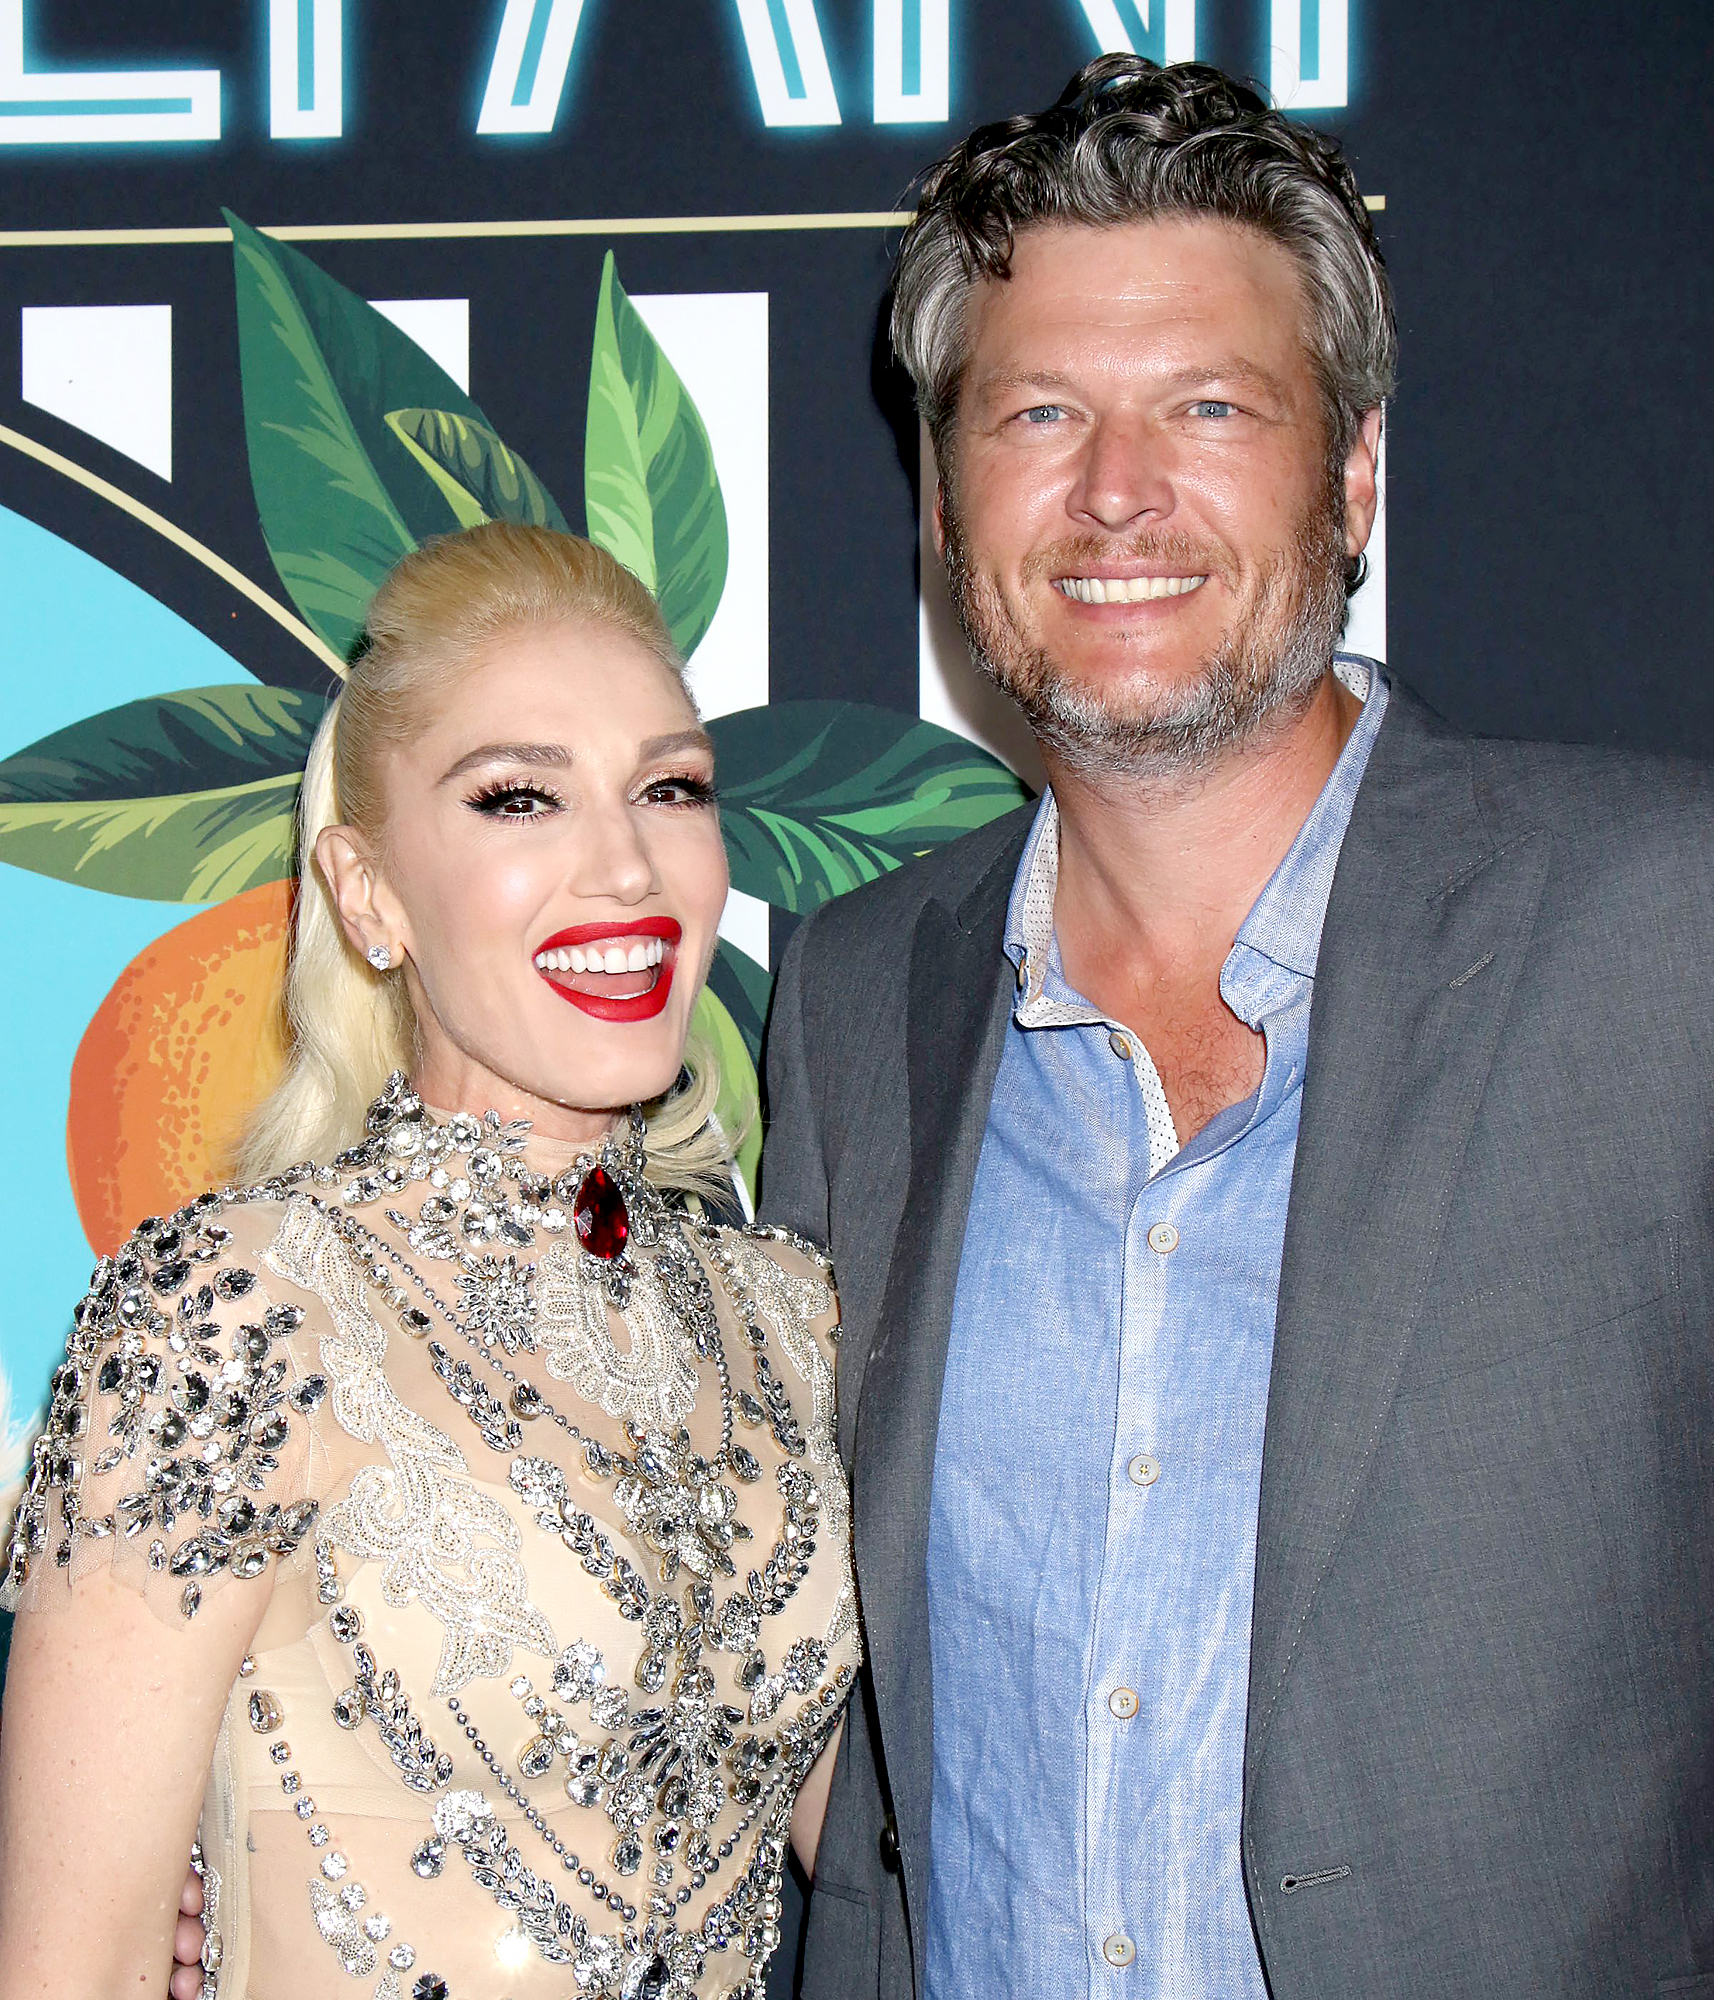 Gwen-Stefani-Had-No-Idea-Who-Blake-Shelton-Was